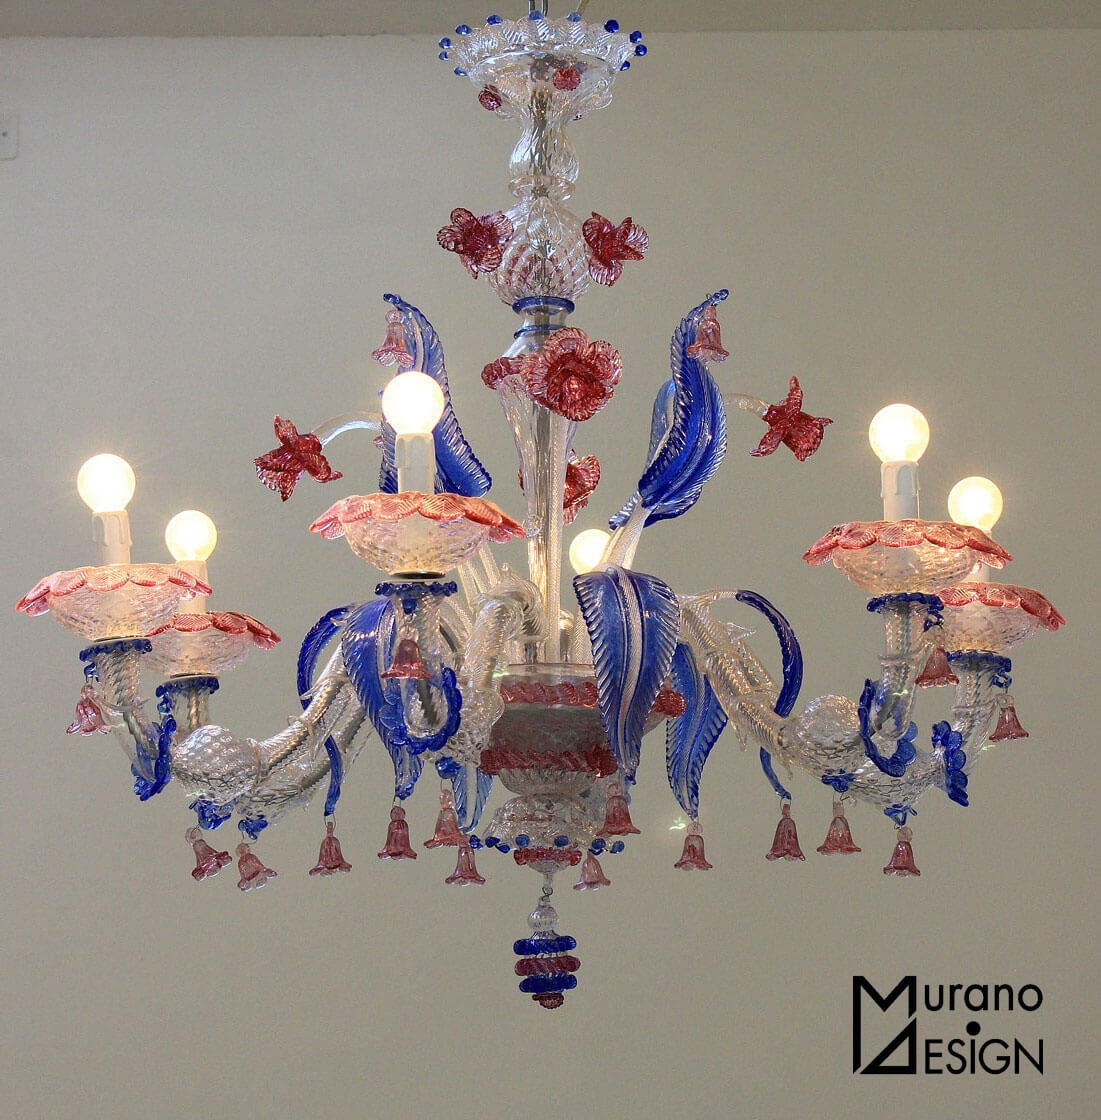 Murano Glass 5 Tips To Recognize The Real One With Regard To Murano Chandelier Replica (Image 9 of 15)